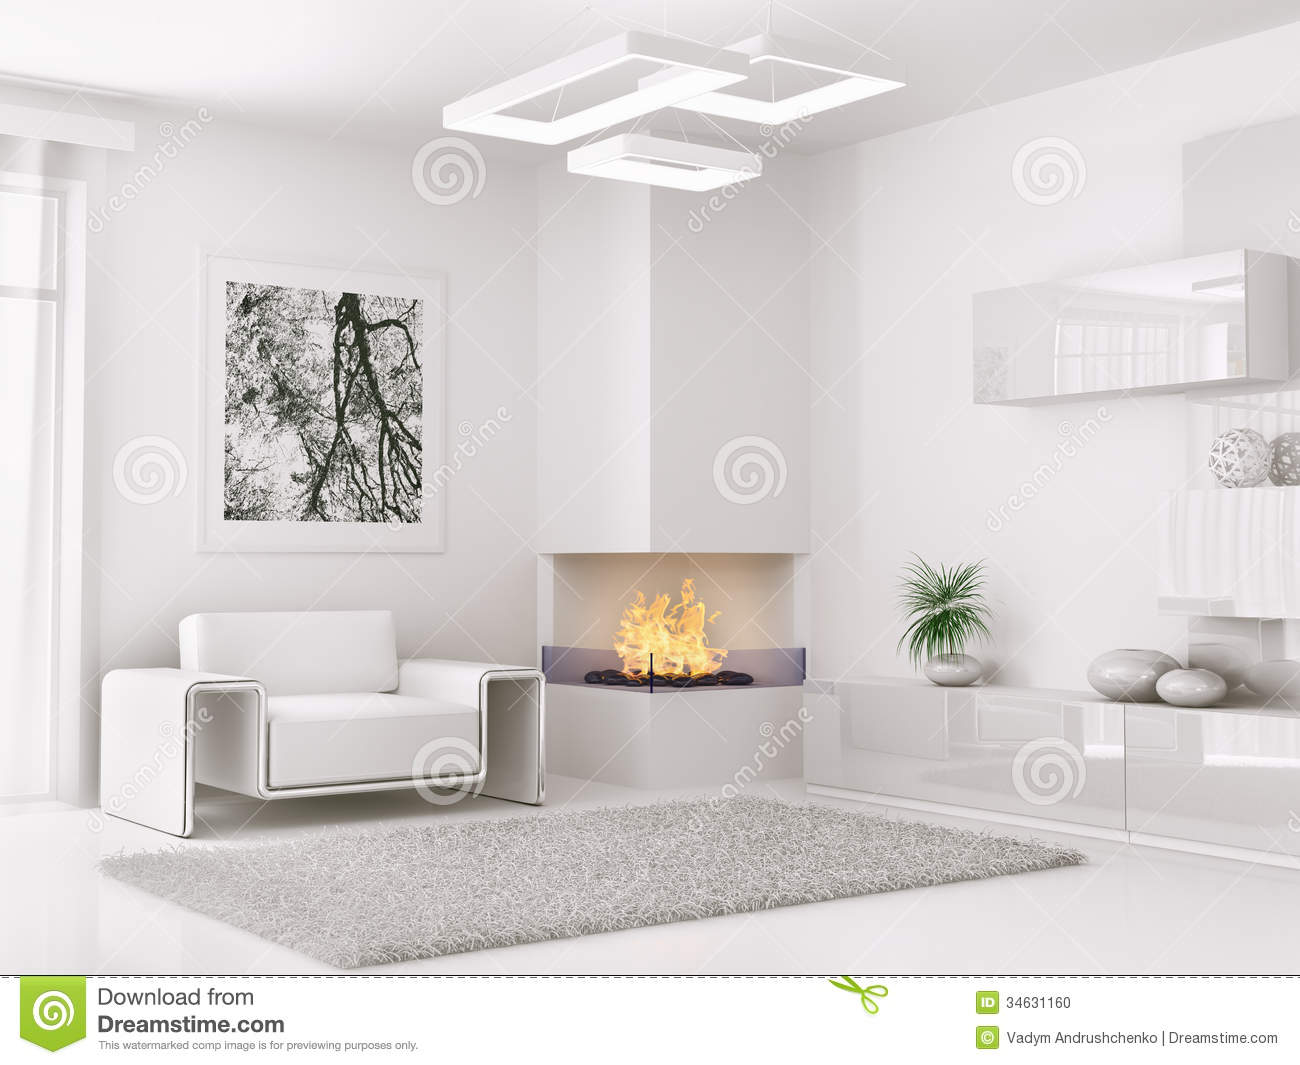 Master bedroom wall paint designs - Interior Of Modern White Room 3d Render Stock Photo